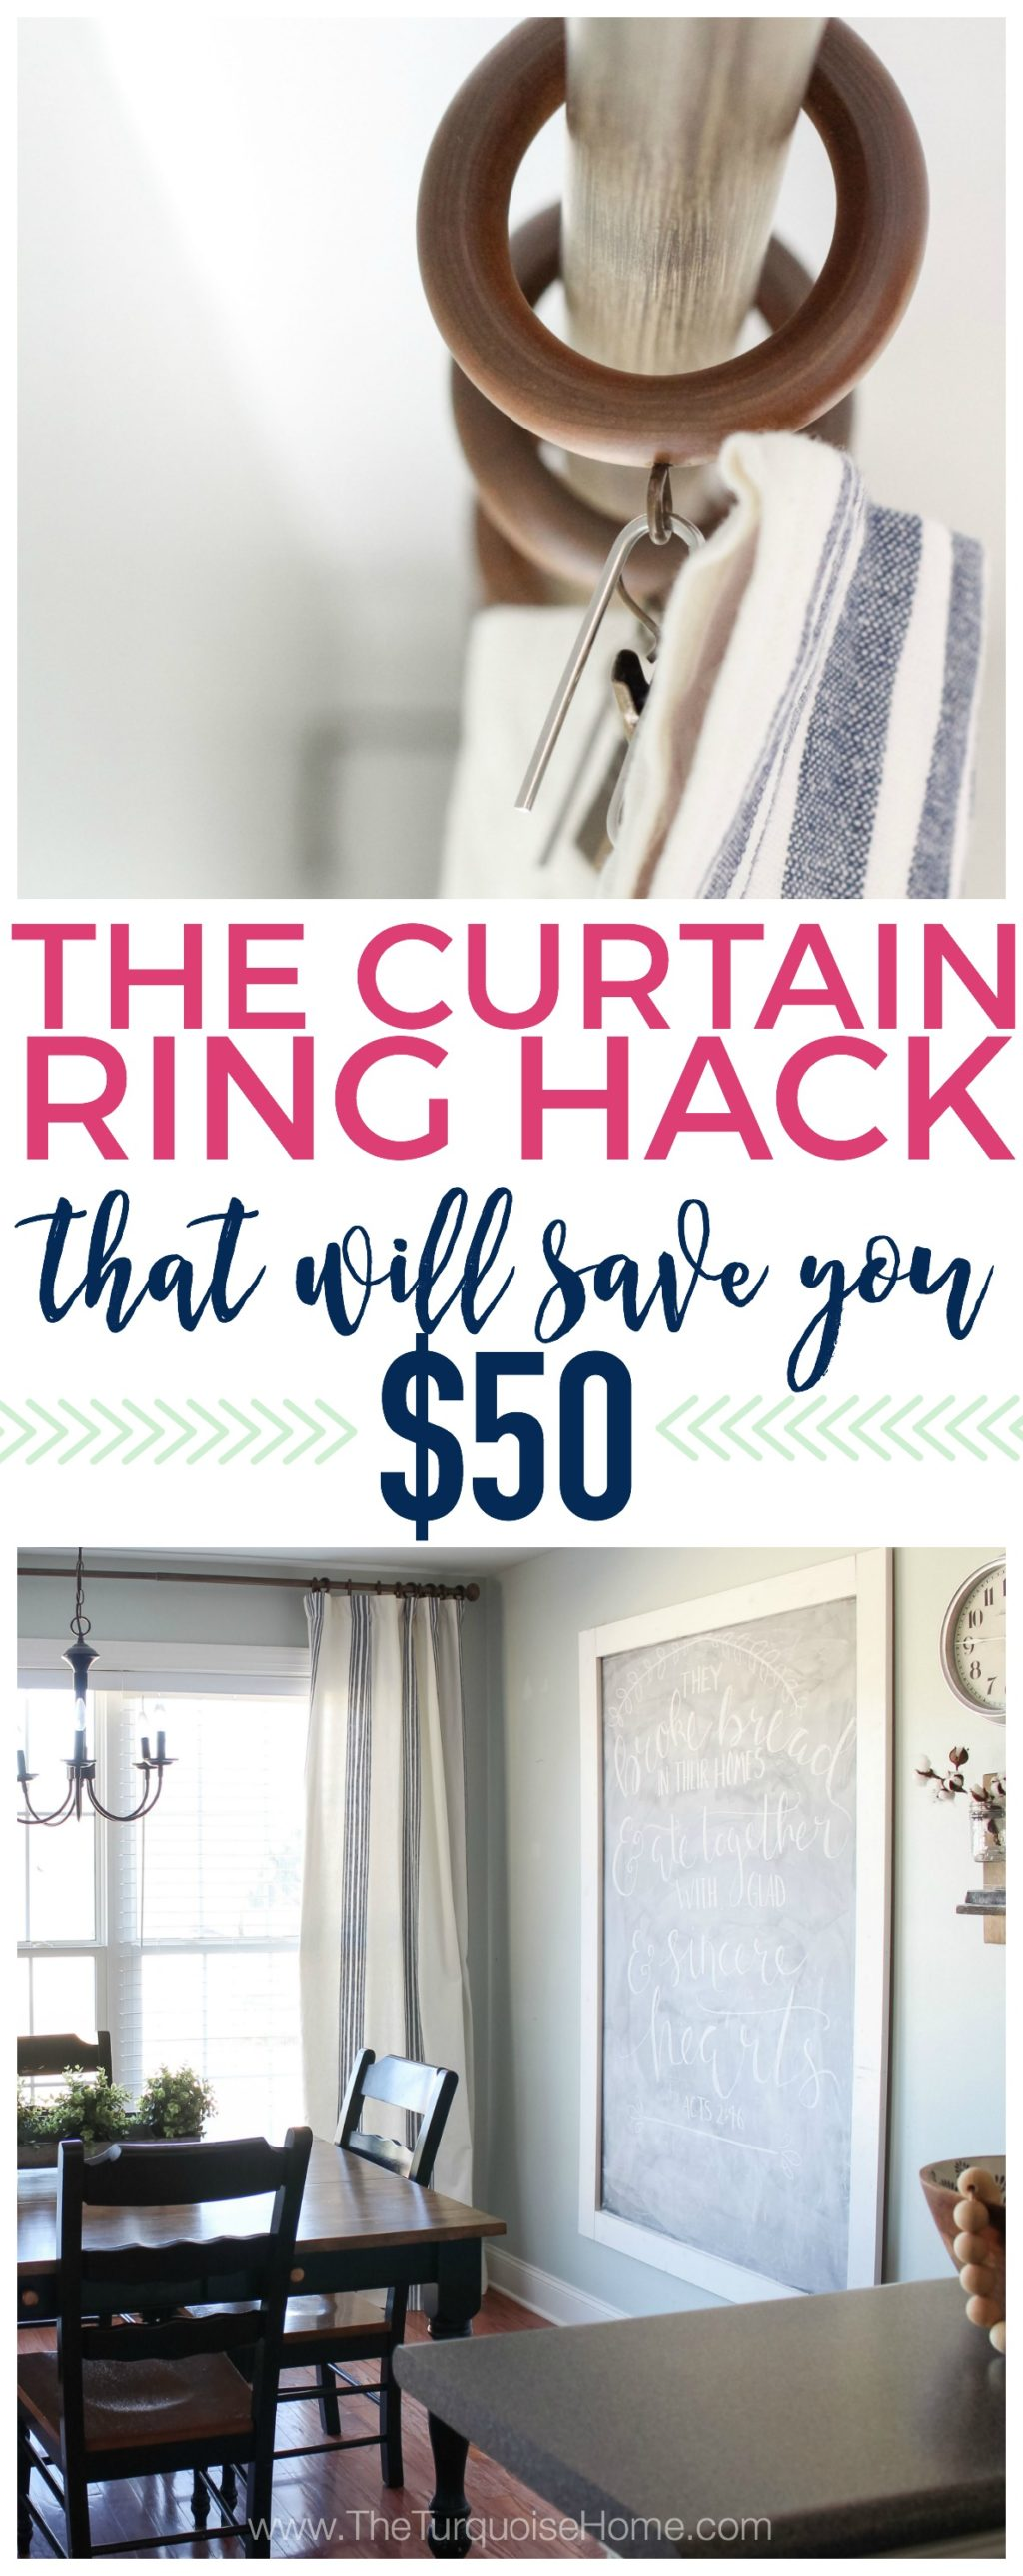 The Curtain Ring Hack that will save you money!